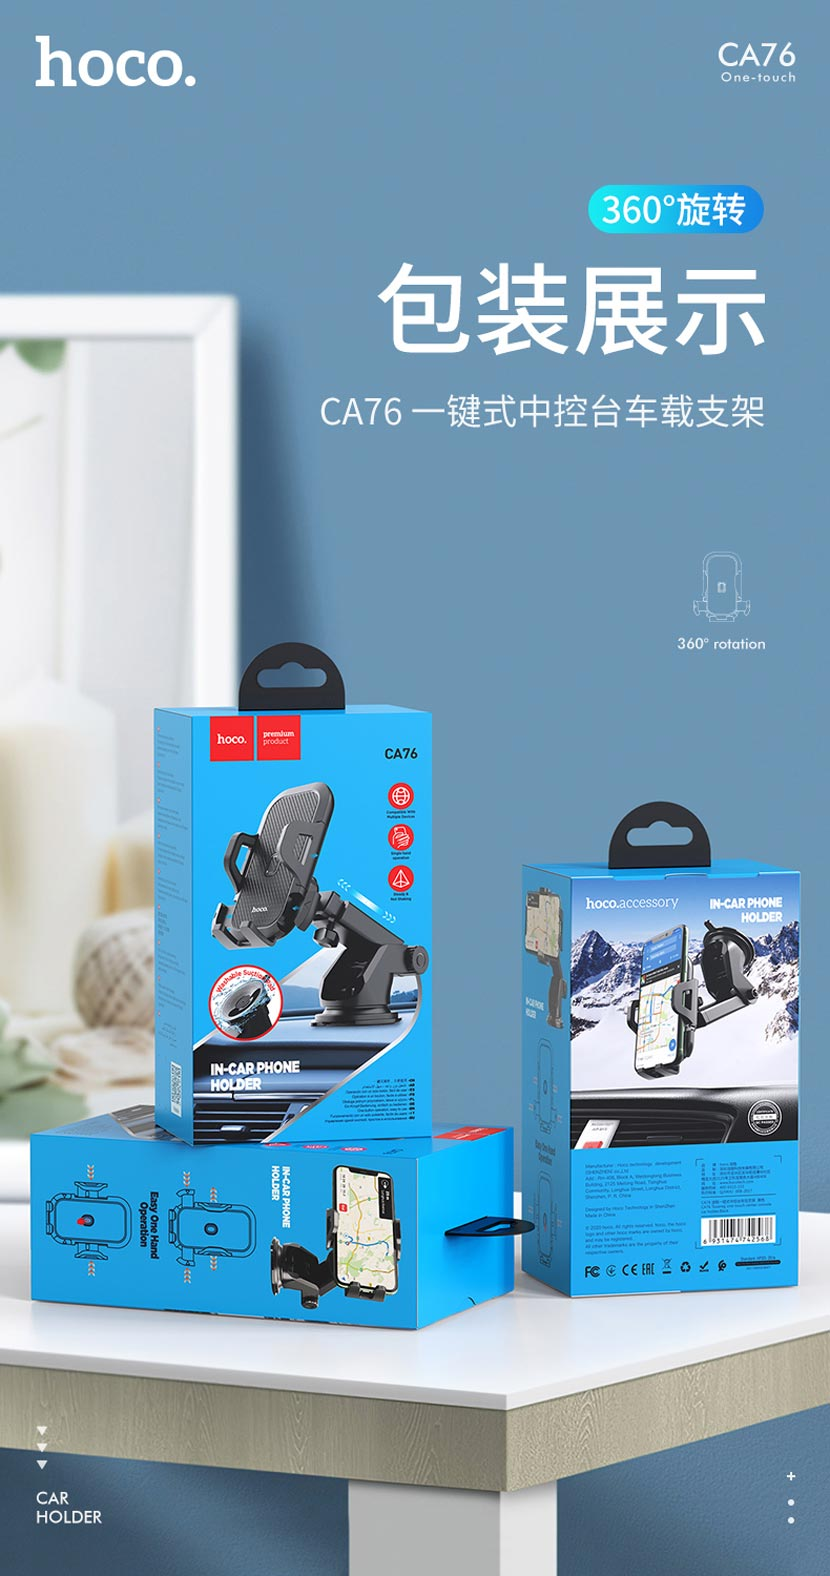 hoco news ca76 touareg one touch center console car holder package cn